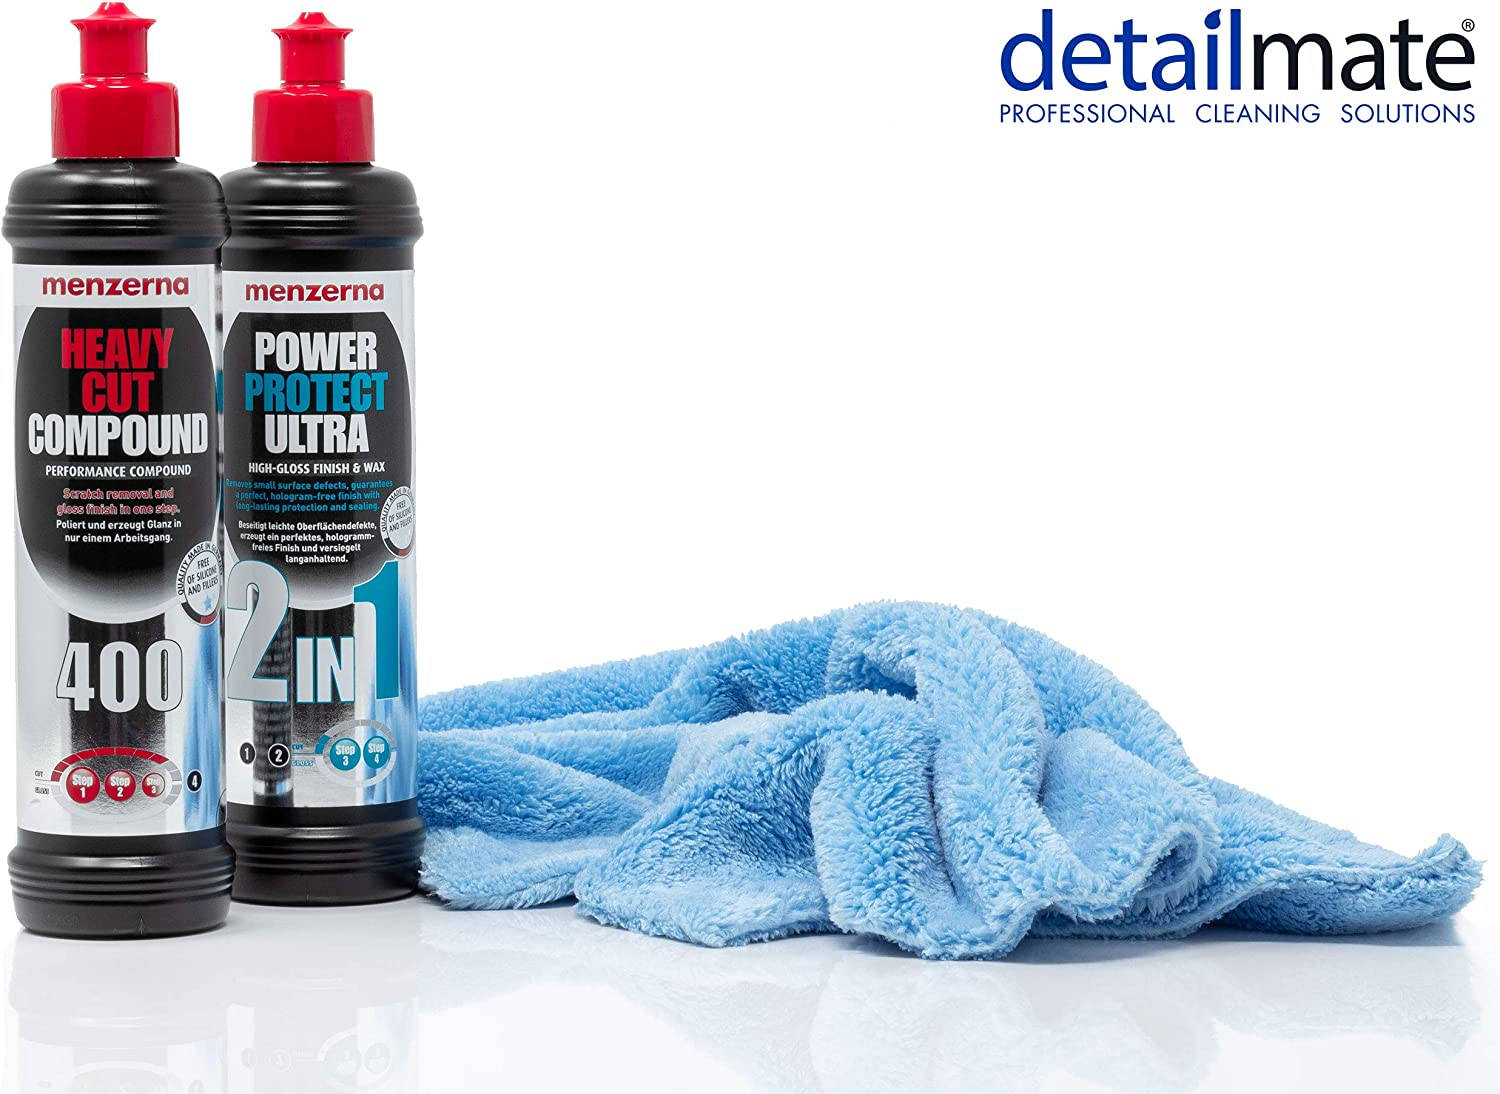 Detailmate Auto Politur Set Menzerna Autopolitur Heavy Cut Compound Hc 400 250 Ml Menzerna Lackversiegelung Power Protect Ultra 2 In 1 250 Ml Extra Langfloriges Mikrofaser Poliertuch 450 Gsm Auto